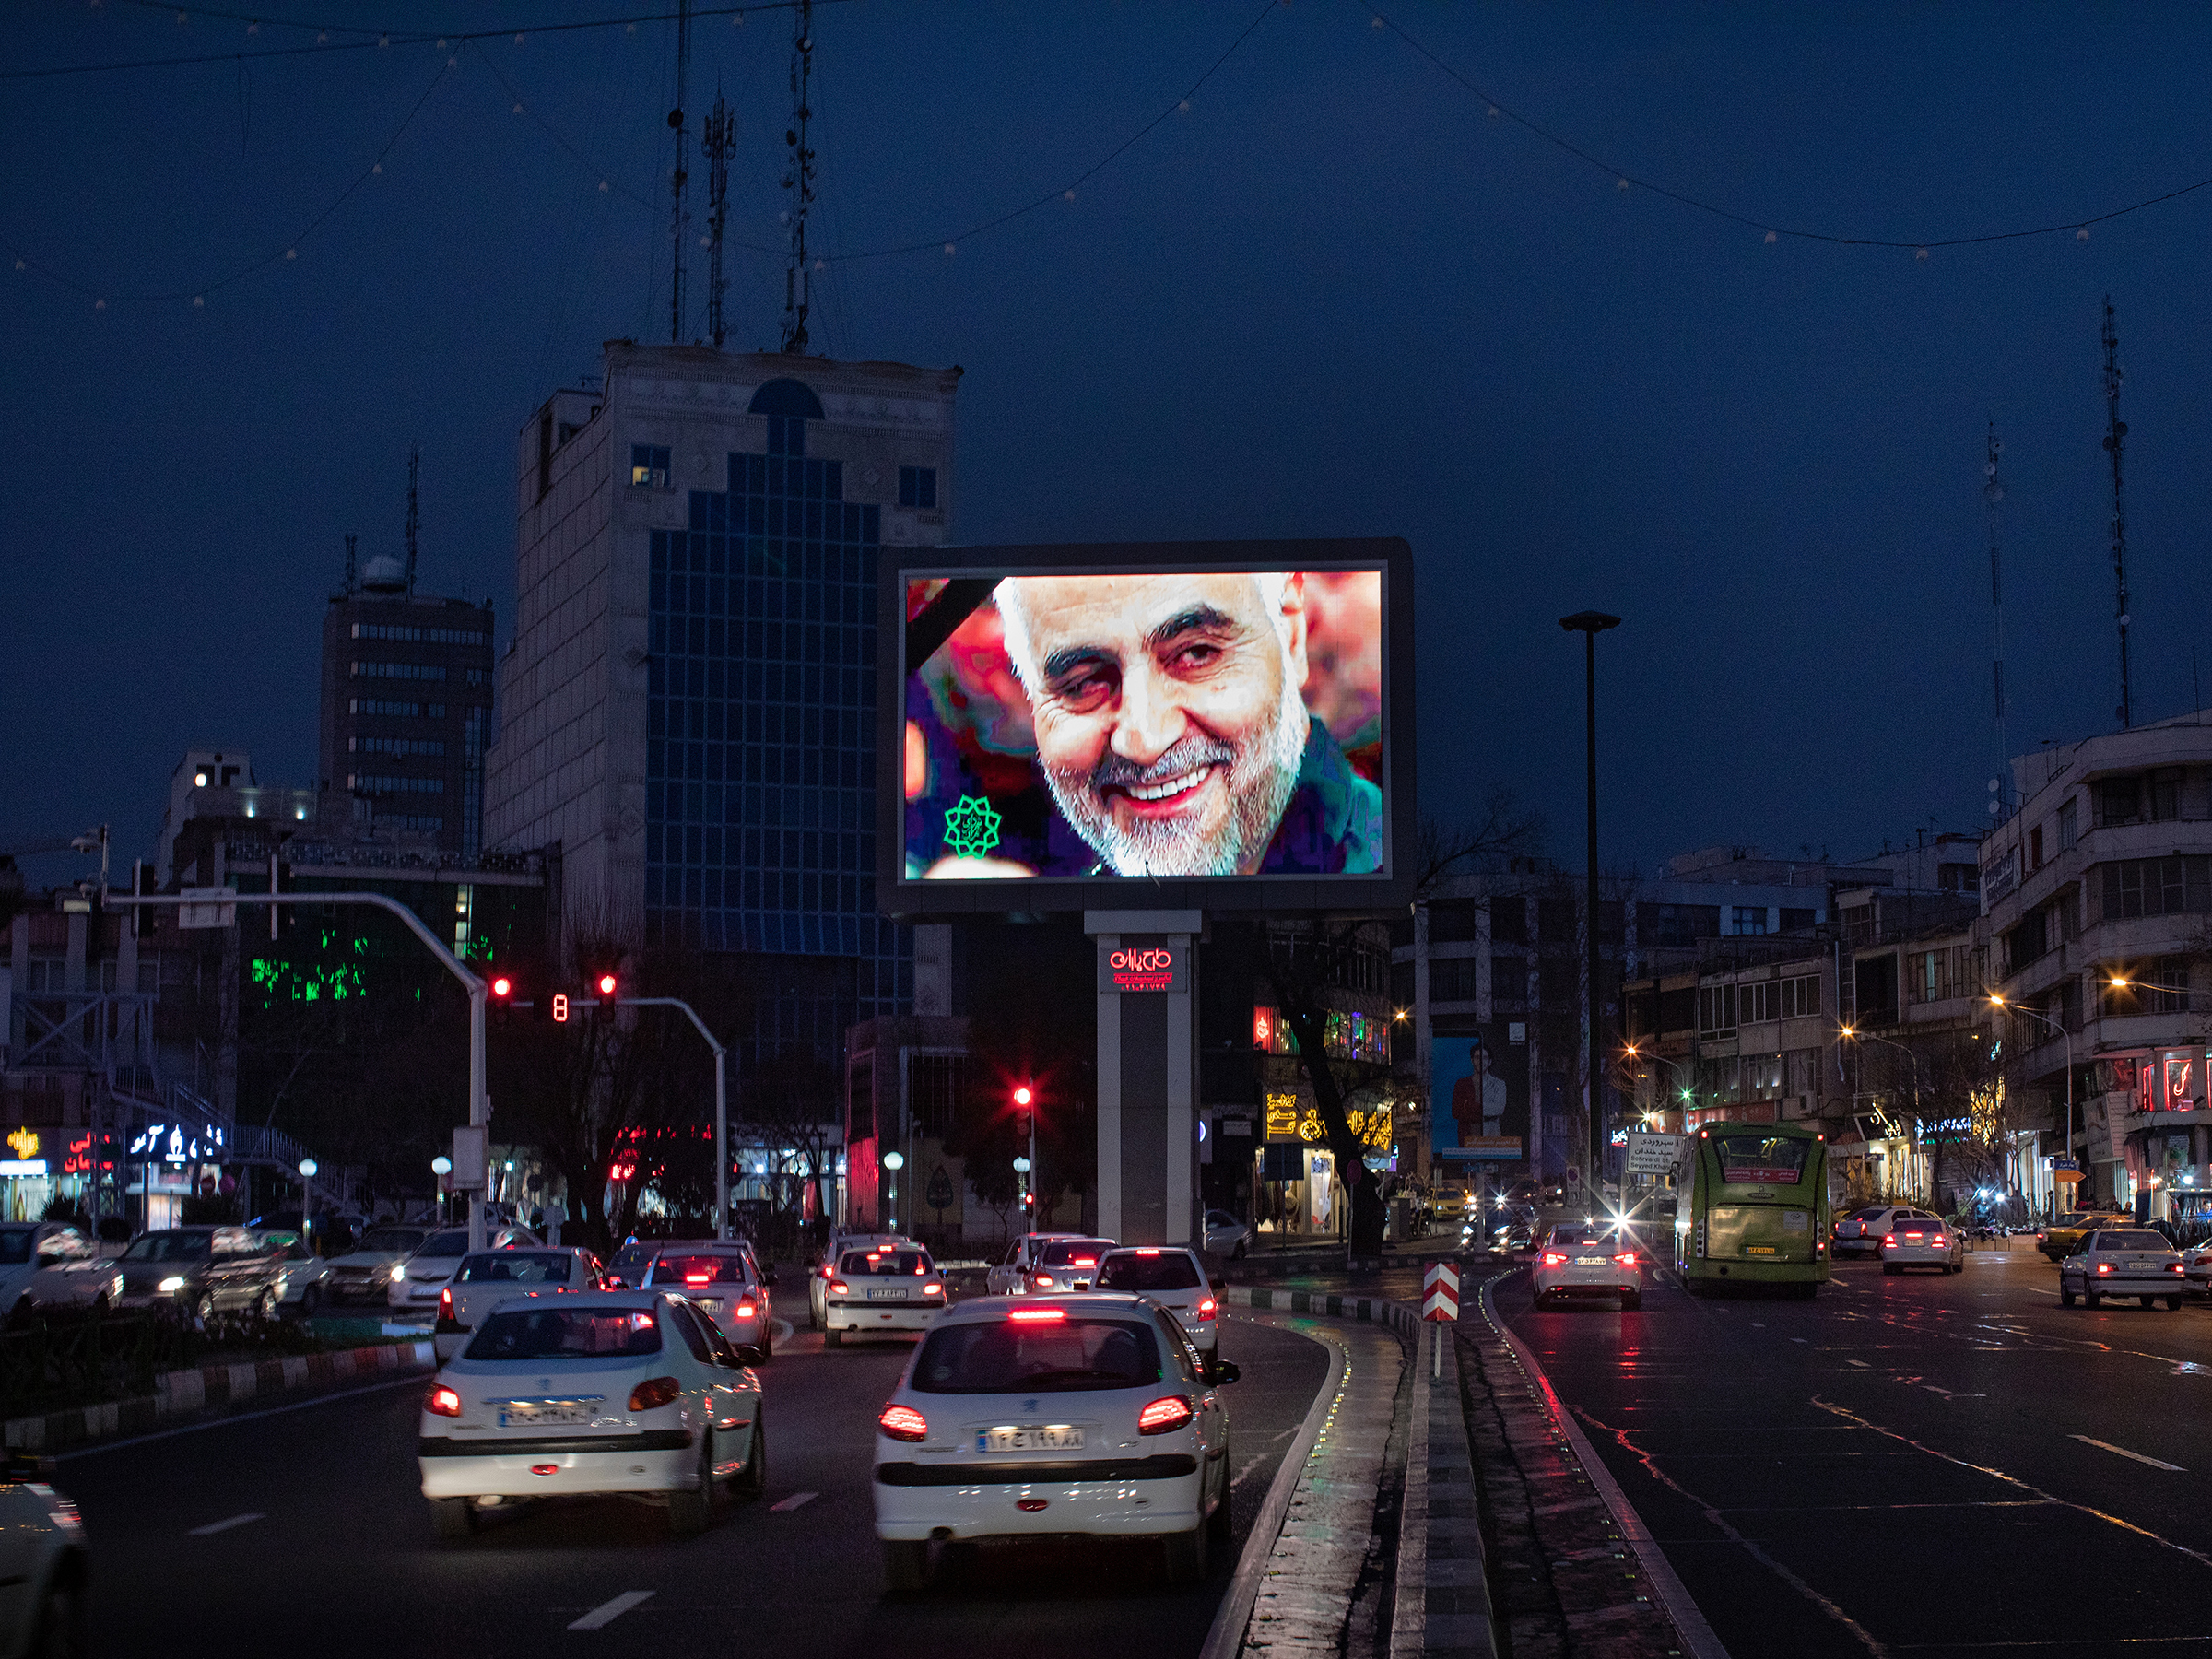 As the evening traffic unfolds in Tehran, a giant digital billboard in Haft-e Tir square displays an image of Maj. Gen. Qasem Soleimani, following his killing in Baghdad, on Jan. 3.